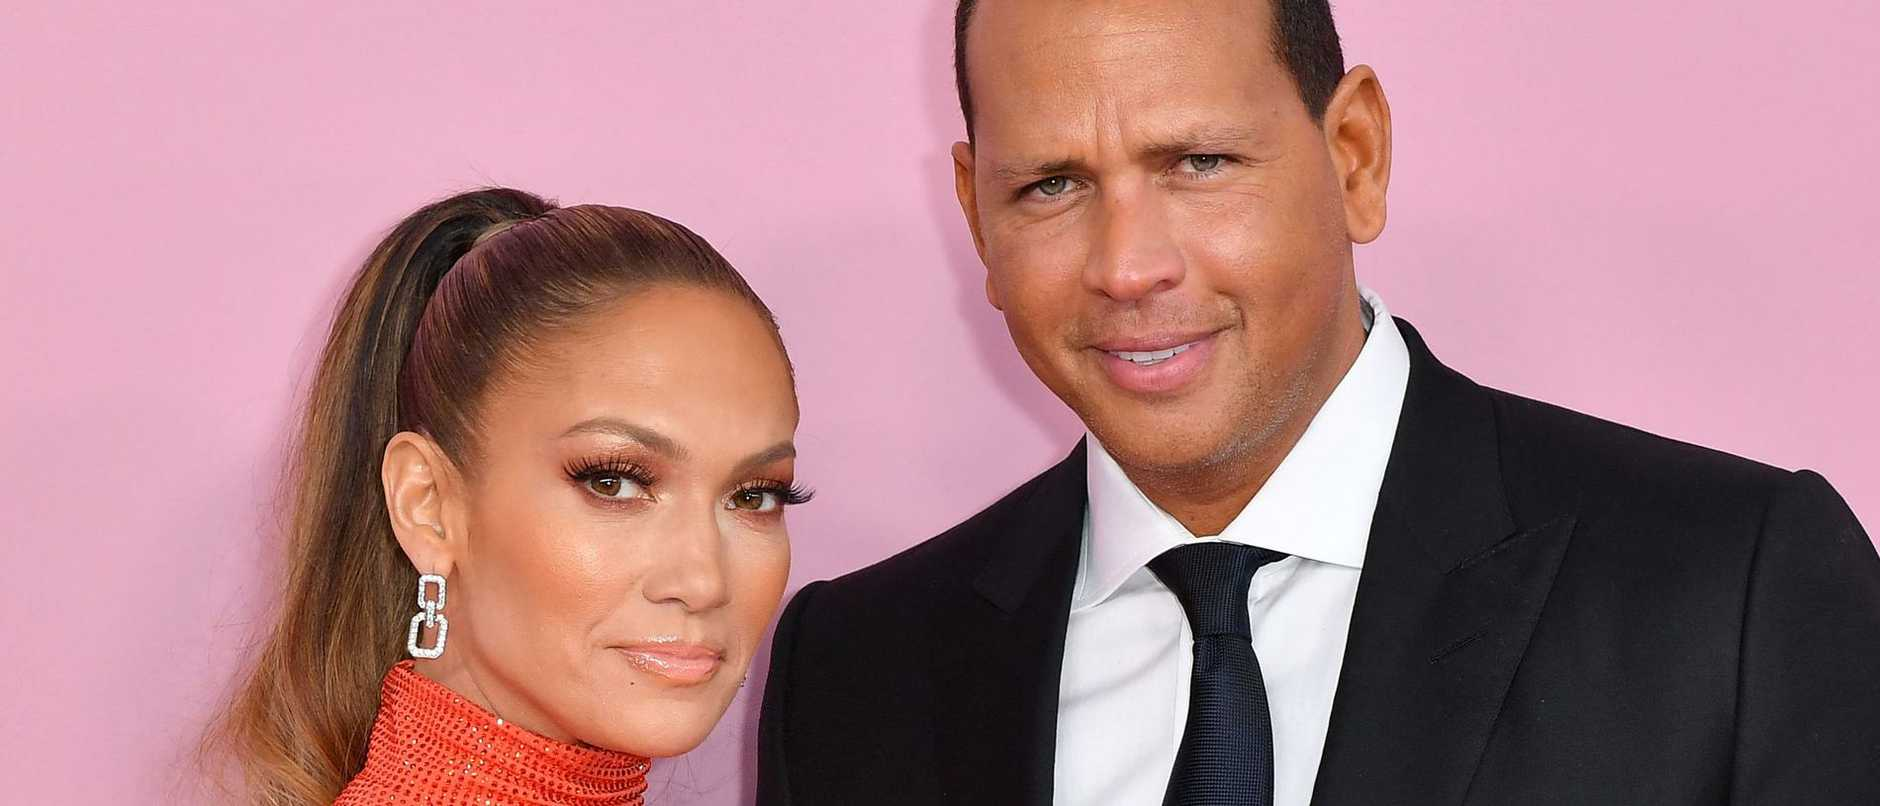 While Jennifer Lopez gallivants around Montana with her famous new fling, Alex Rodriguez is one step closer to becoming an NBA owner.